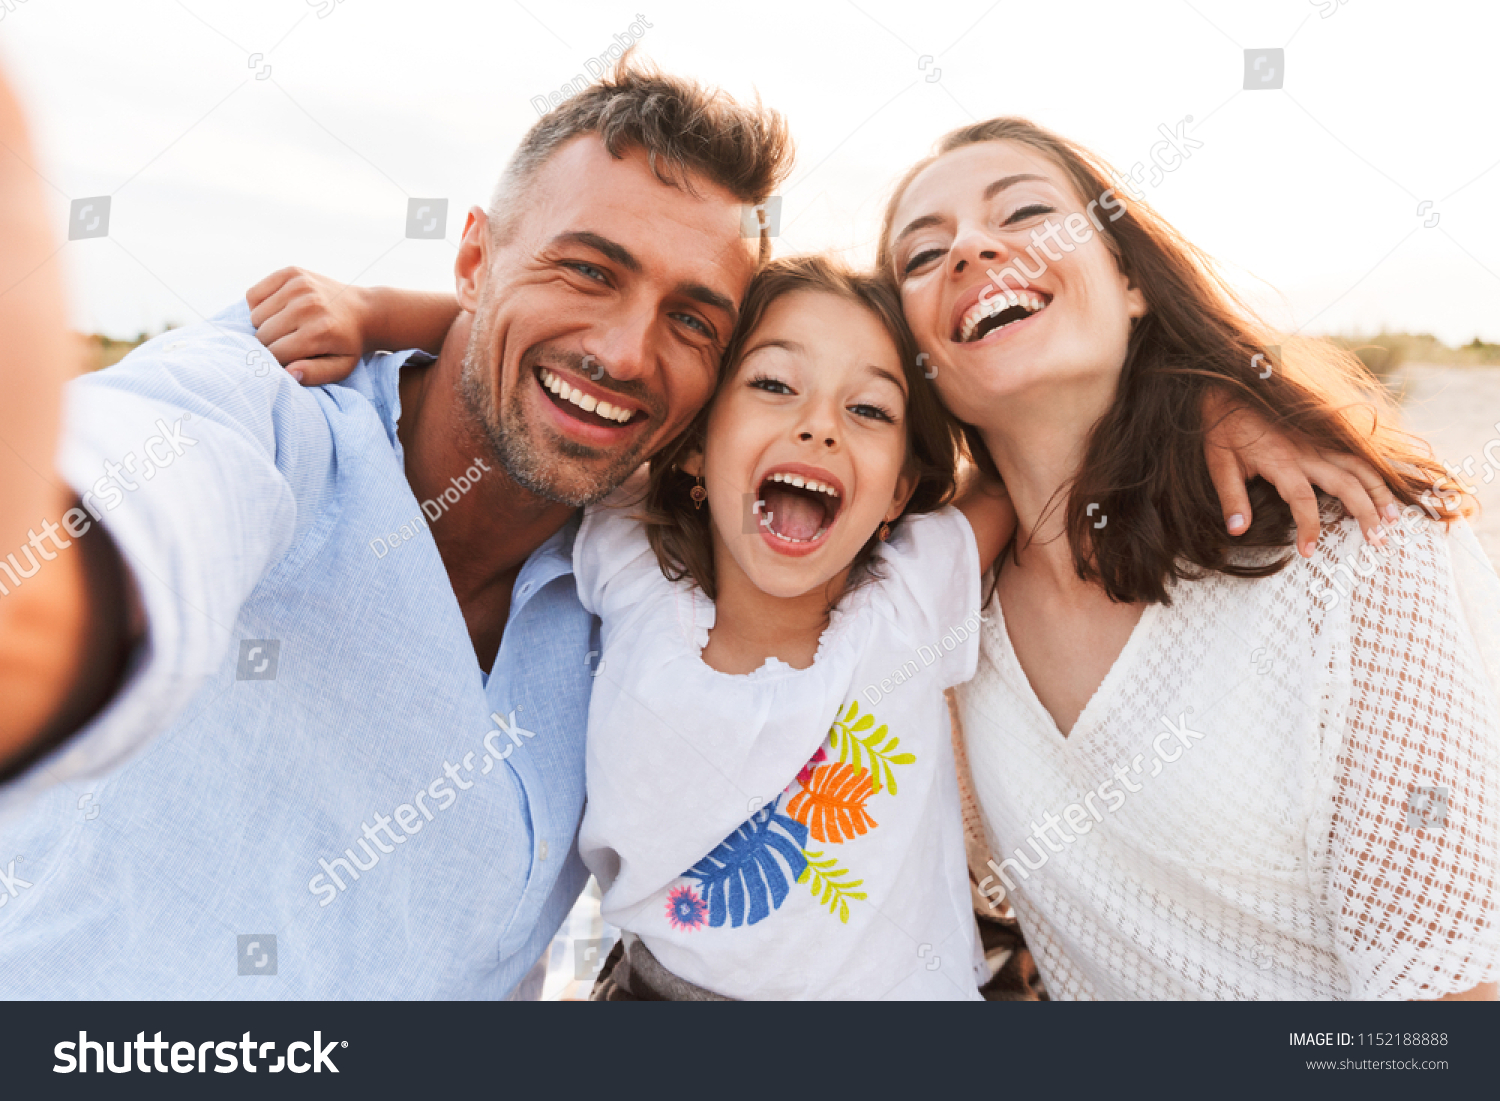 stock-photo-image-of-young-cheerful-exci